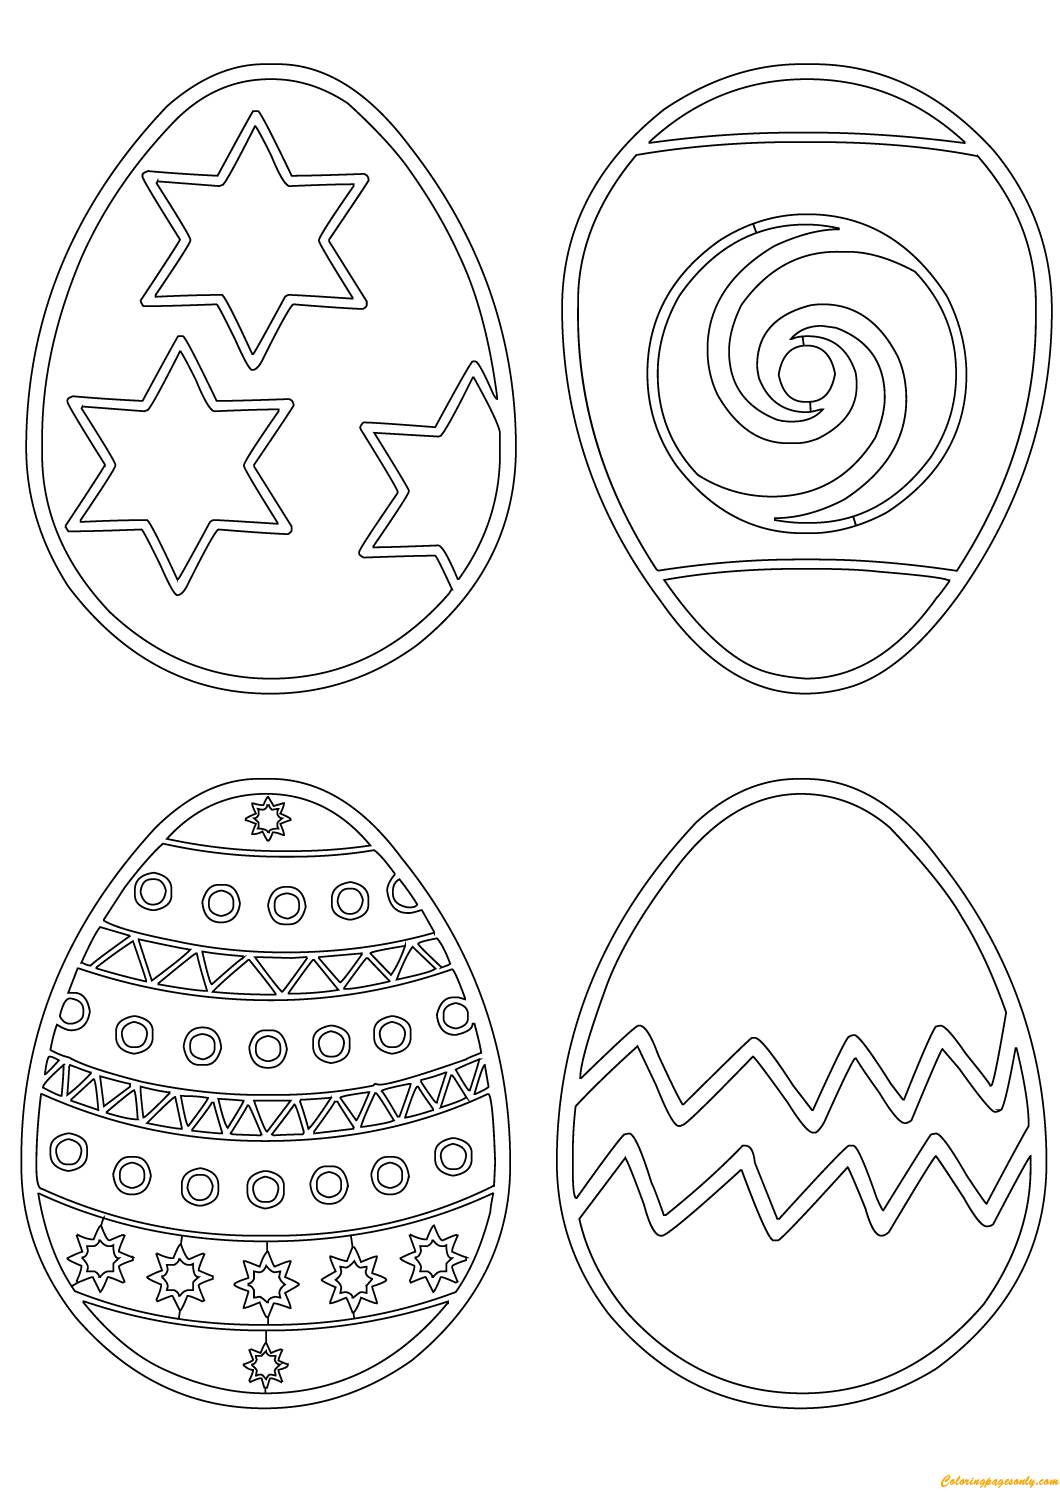 Patterns On Easter Eggs Coloring Page